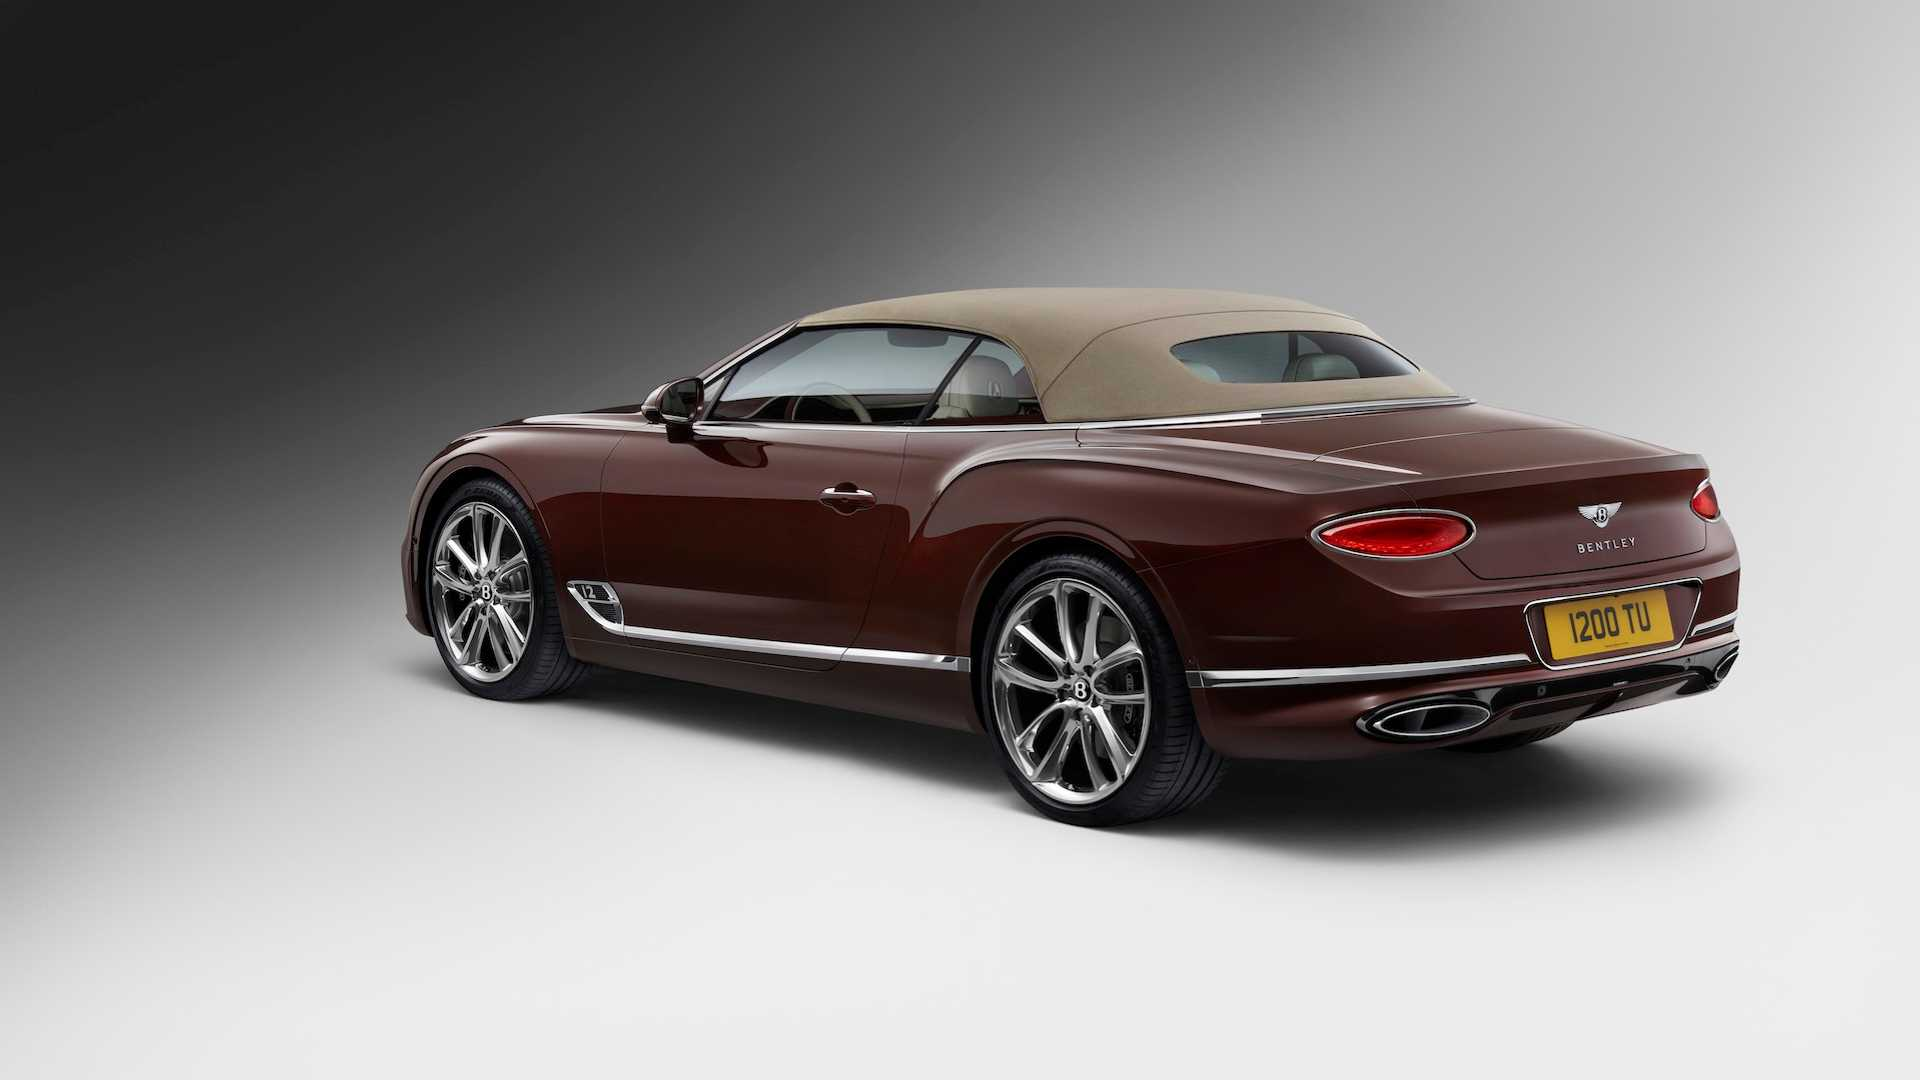 2019-bentley-continental-gt-convertible-unveiled-207-mph-luxury-droptop (19)